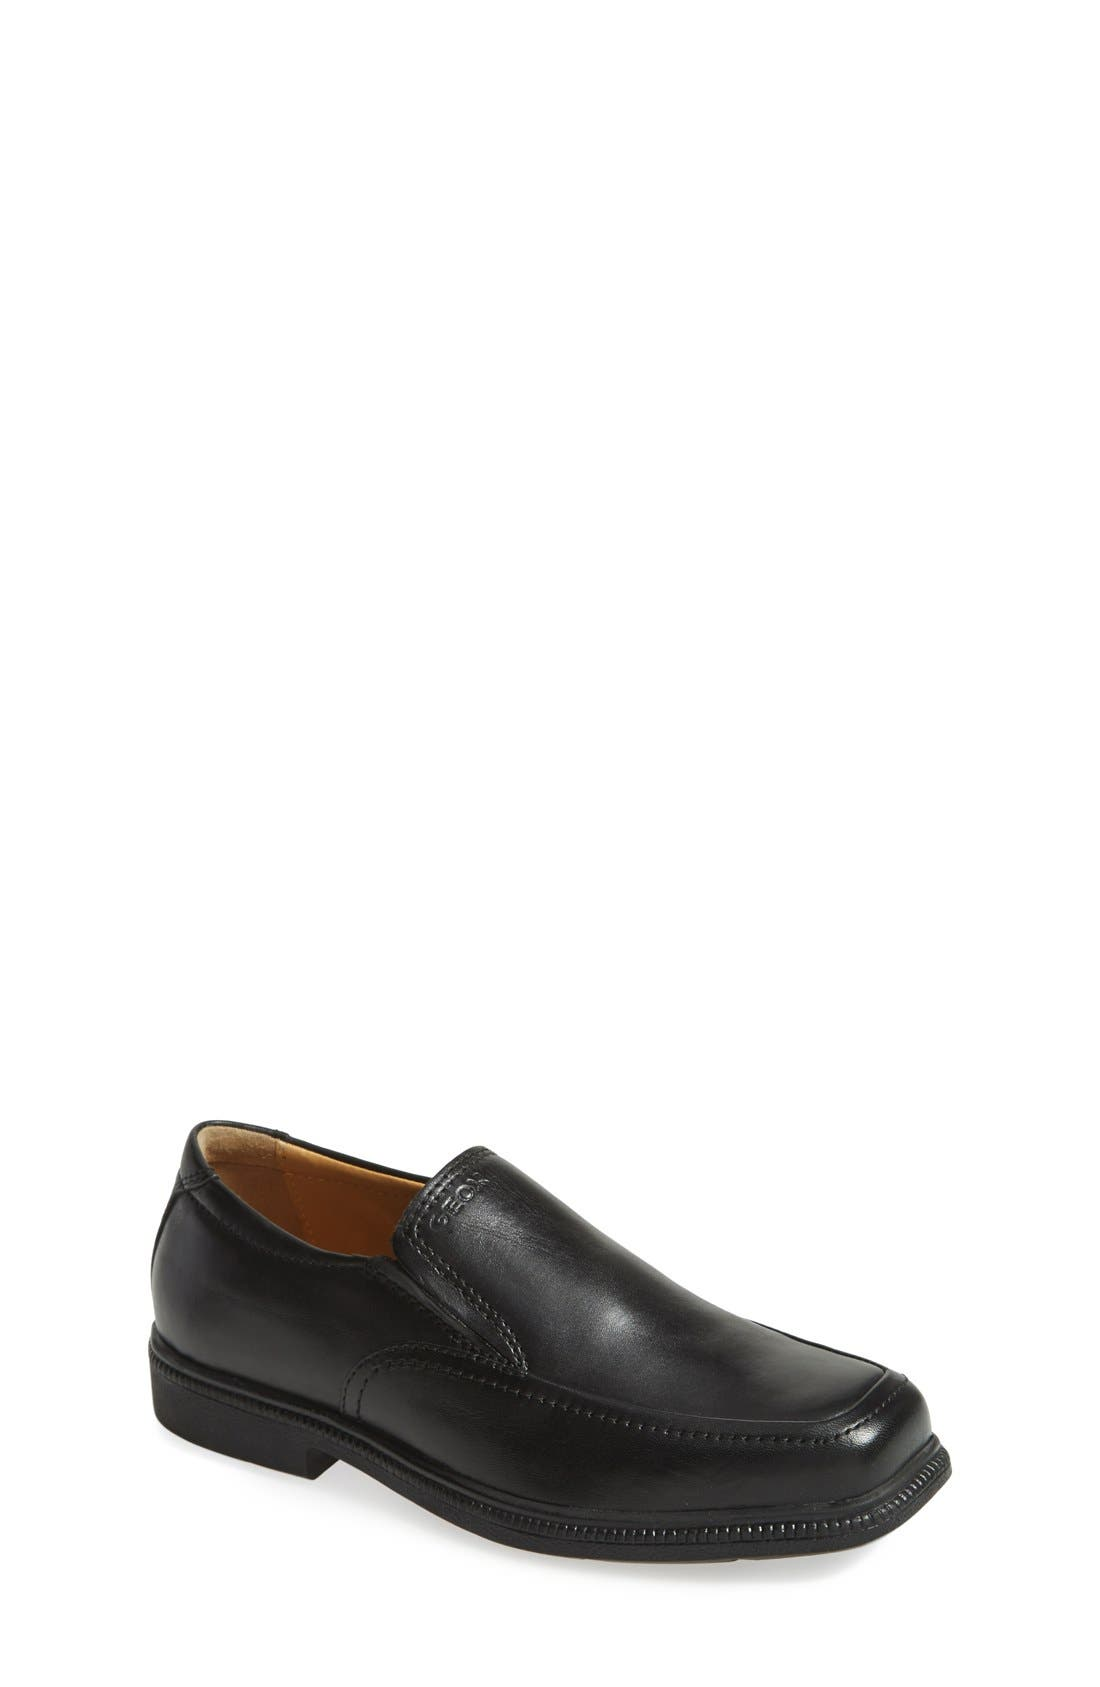 GEOX 'Federico' Loafer, Main, color, 001